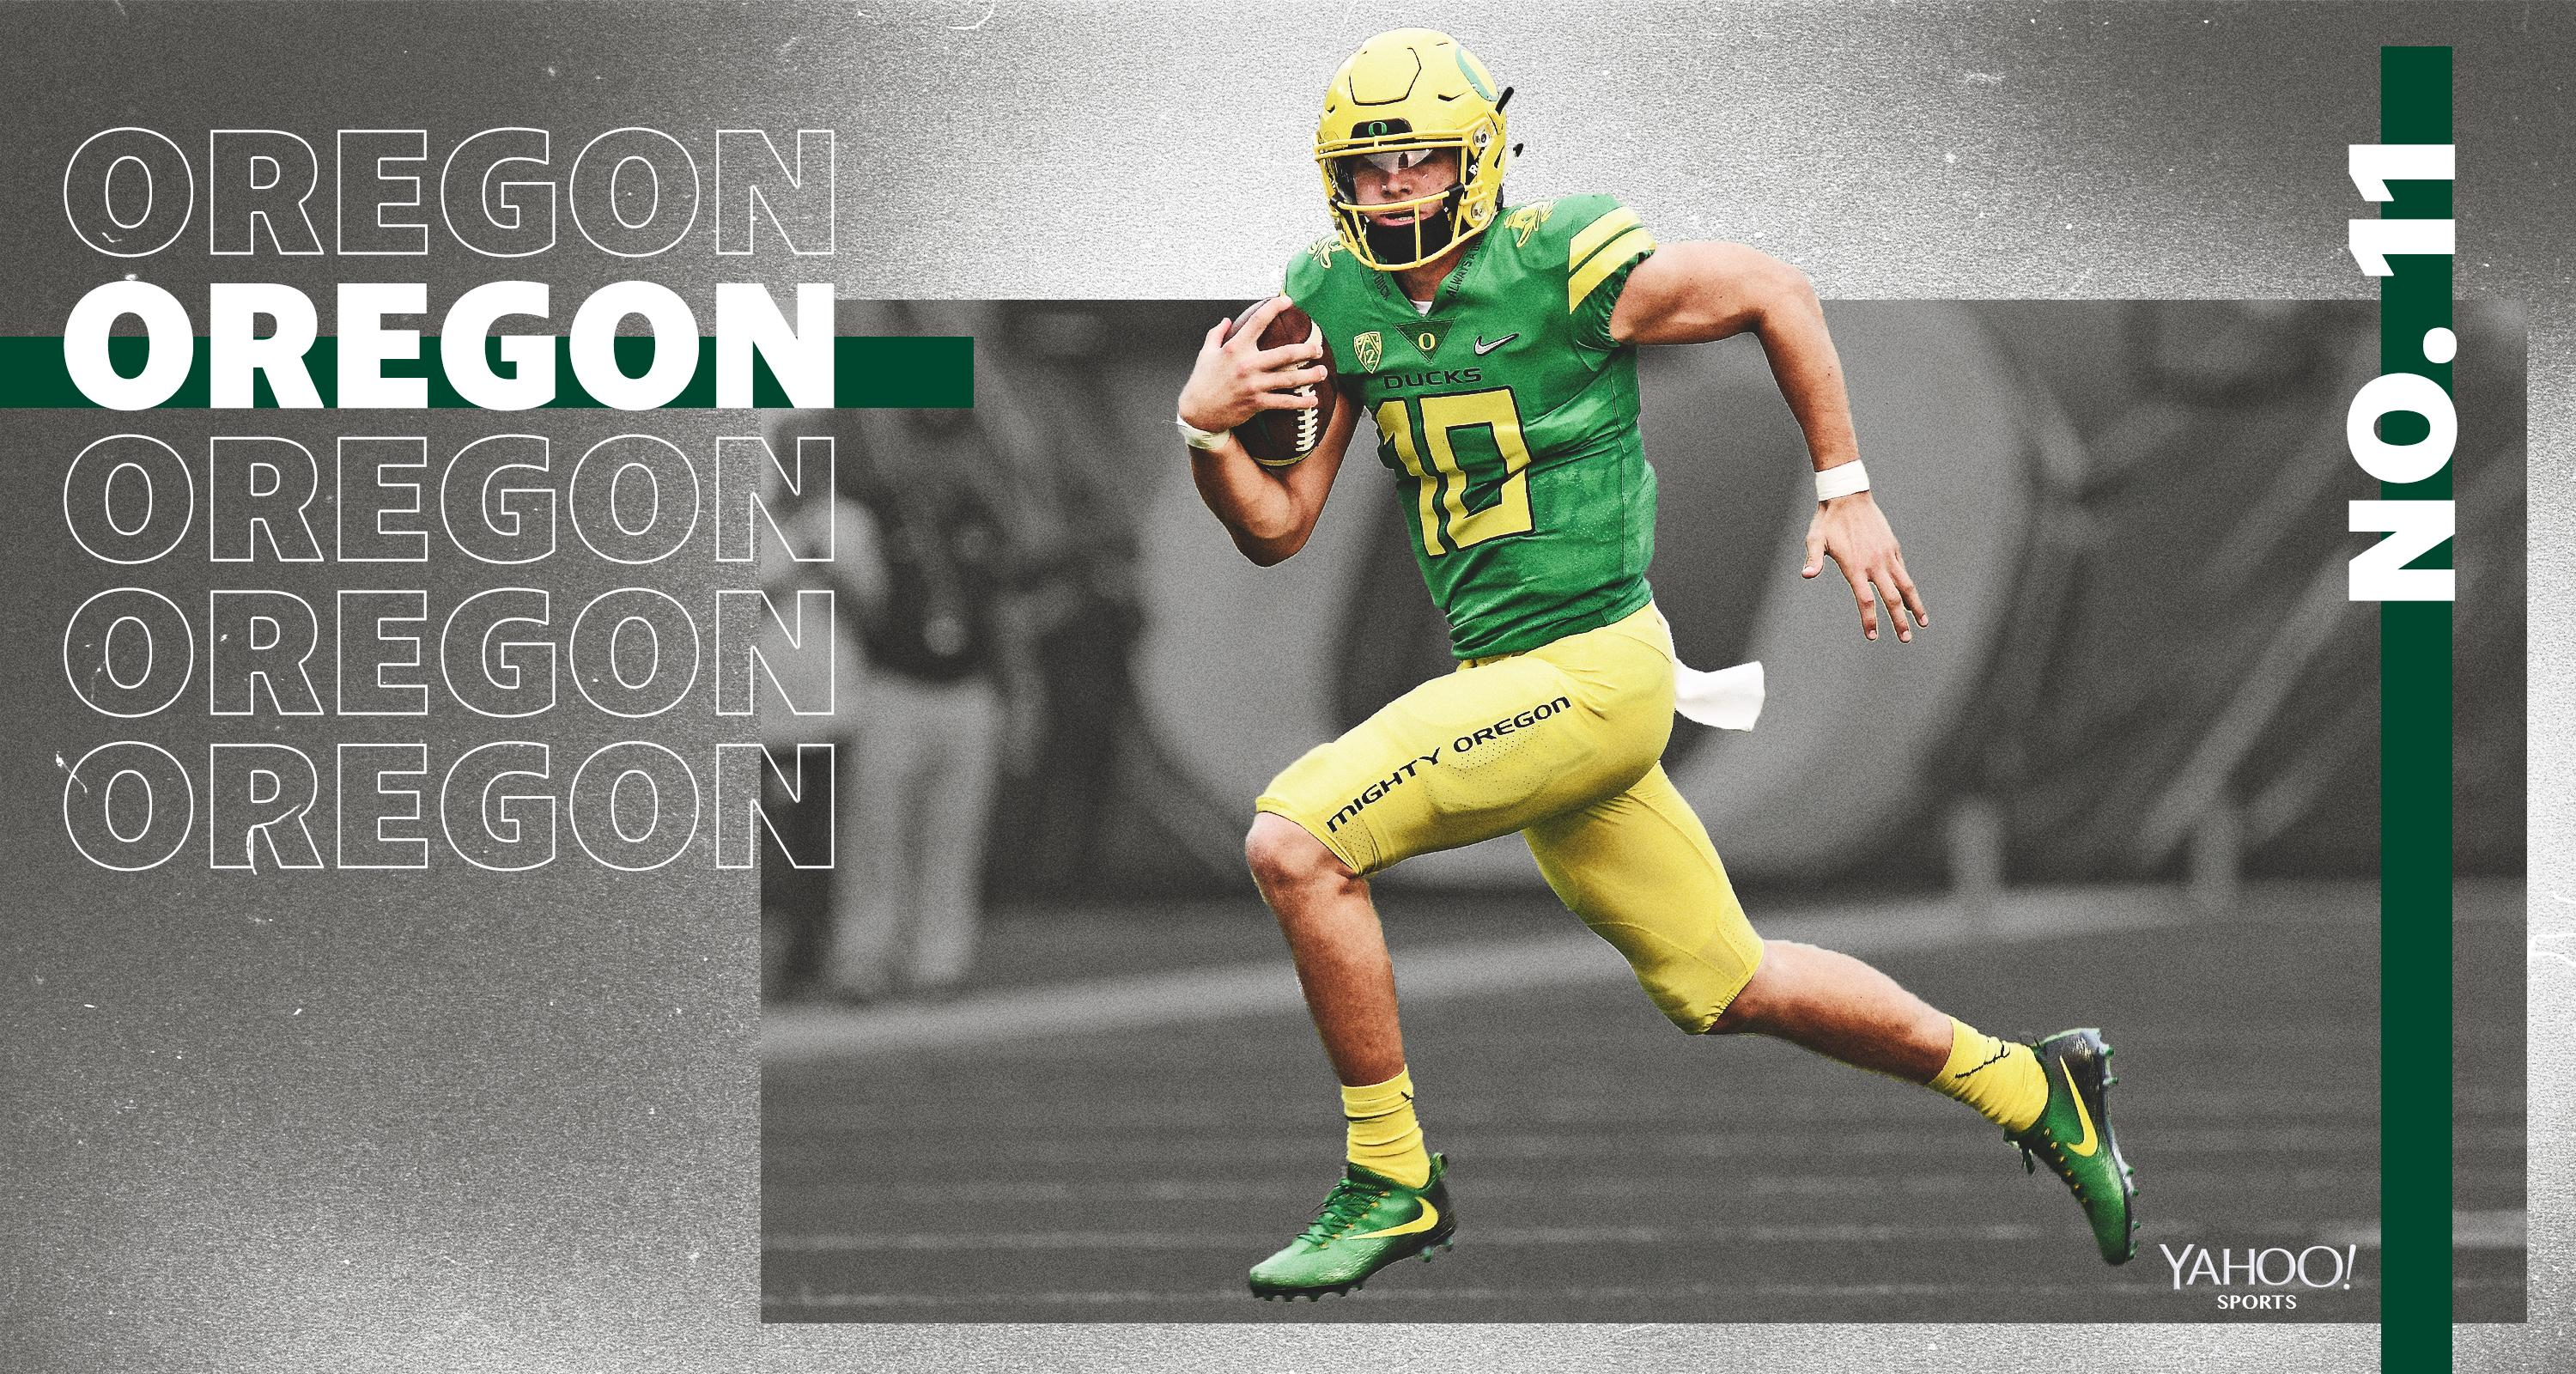 finest selection f1014 7b2d1 Yahoo Sports' preseason 2019 Top 25: No. 11 Oregon